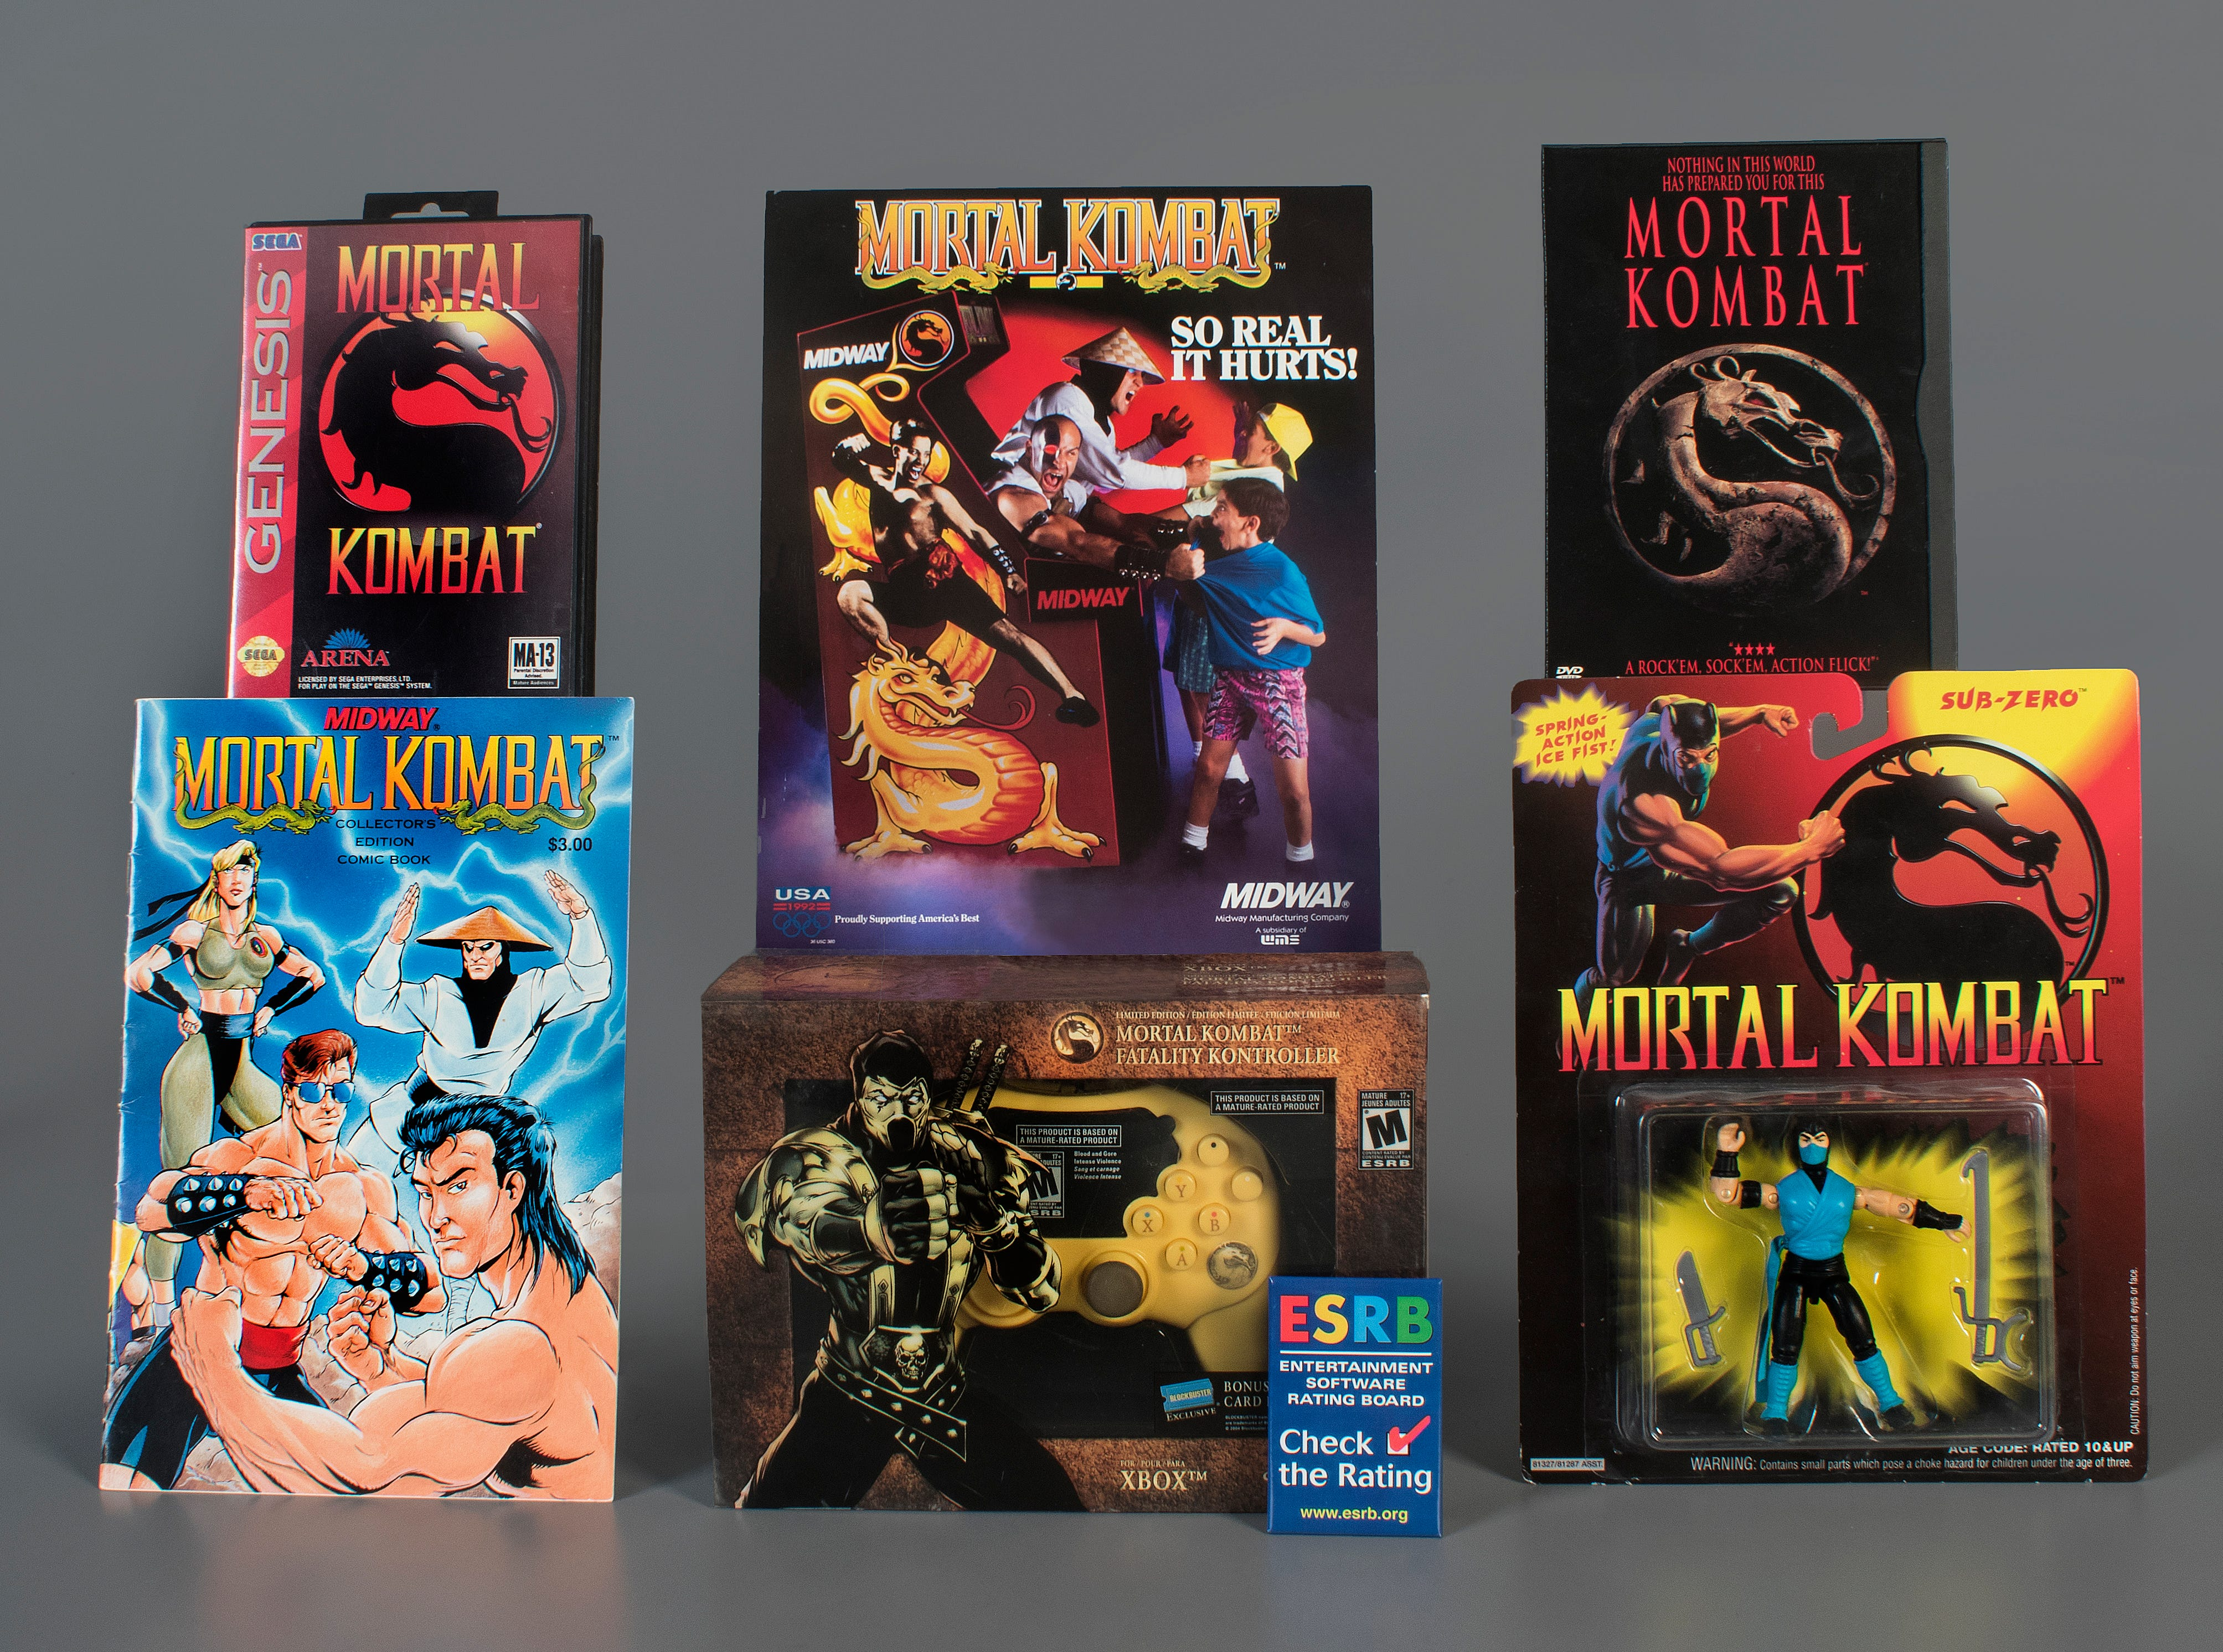 Mortal Kombat was inducted into the World Video Game Hall of Fame in 2019 at The Strong National Museum of Play in Rochester, New York.